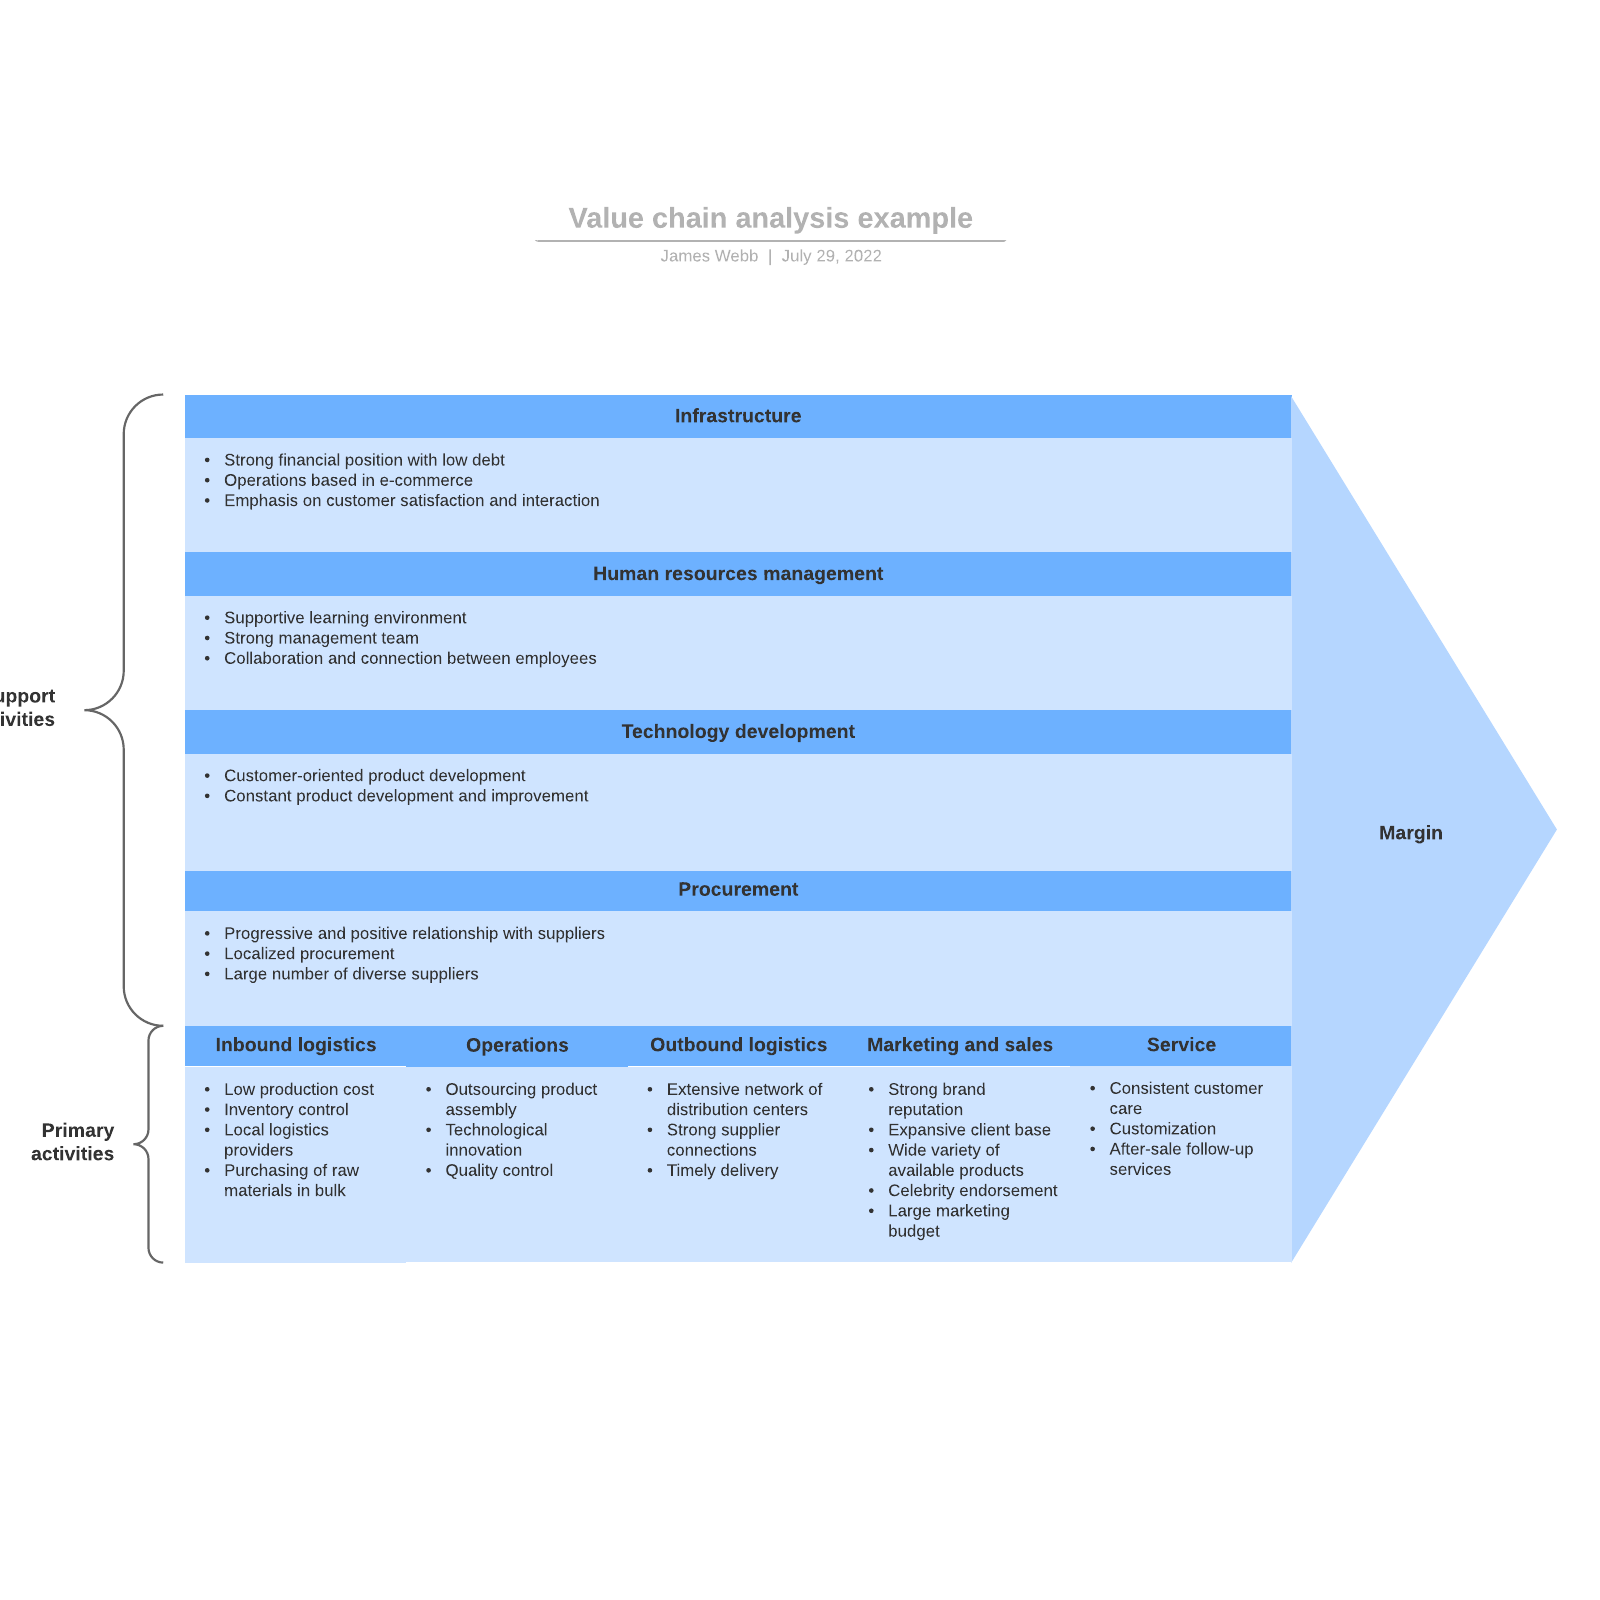 Value chain analysis example